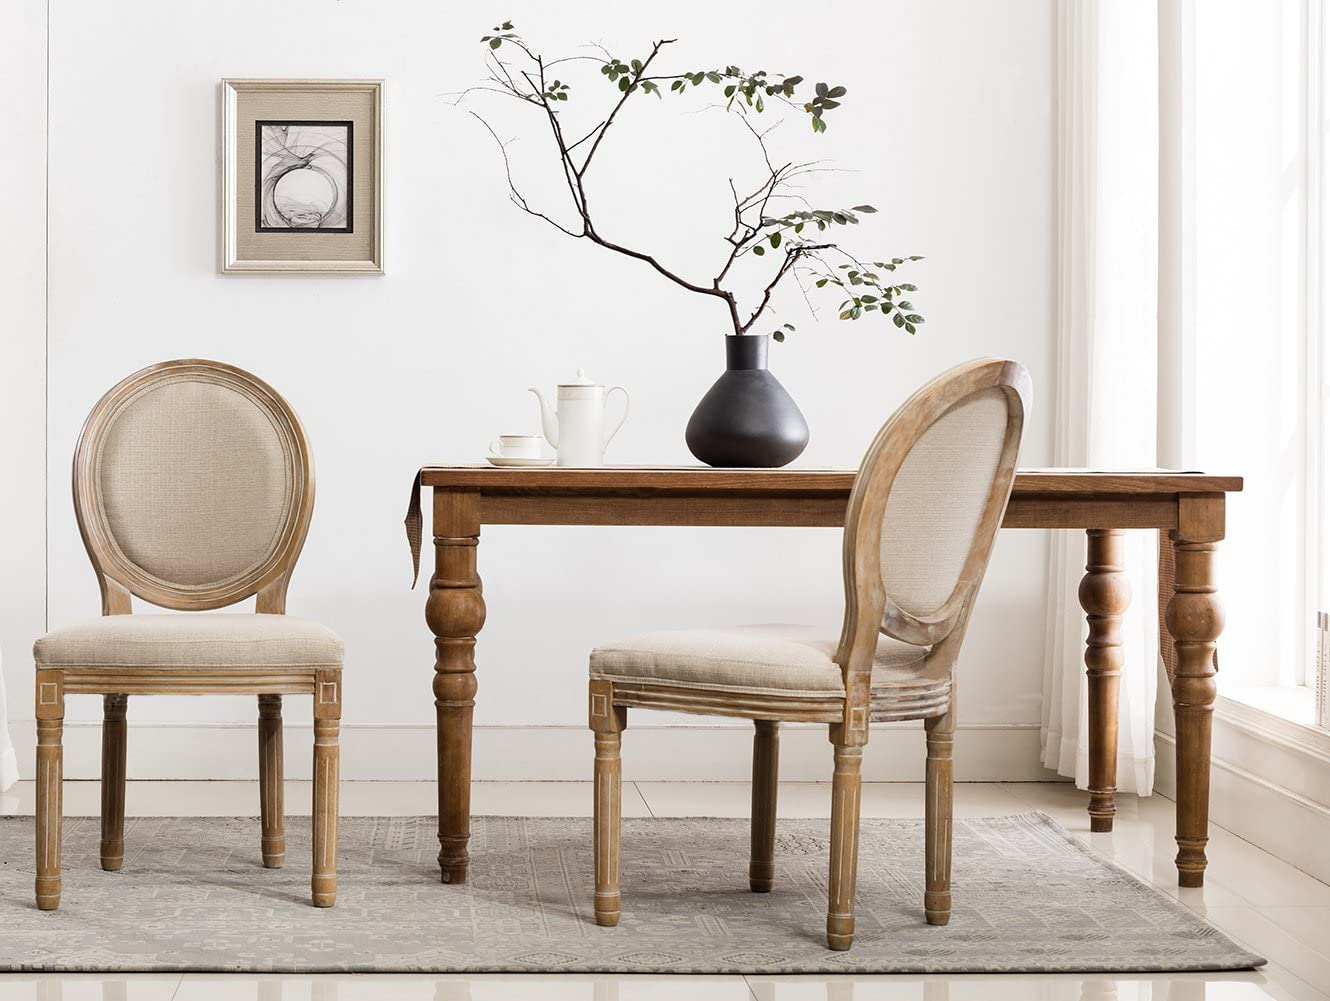 Buy French Retro Dining Chairs, Distressed Wood Chairs with Round ...